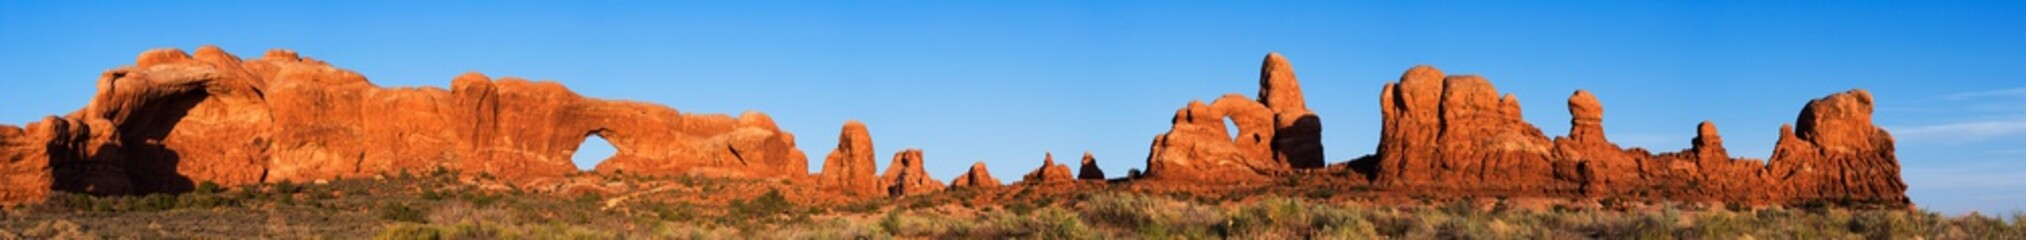 Super Wide Panorama of Arches National Park, from the North Window to Turret Arch